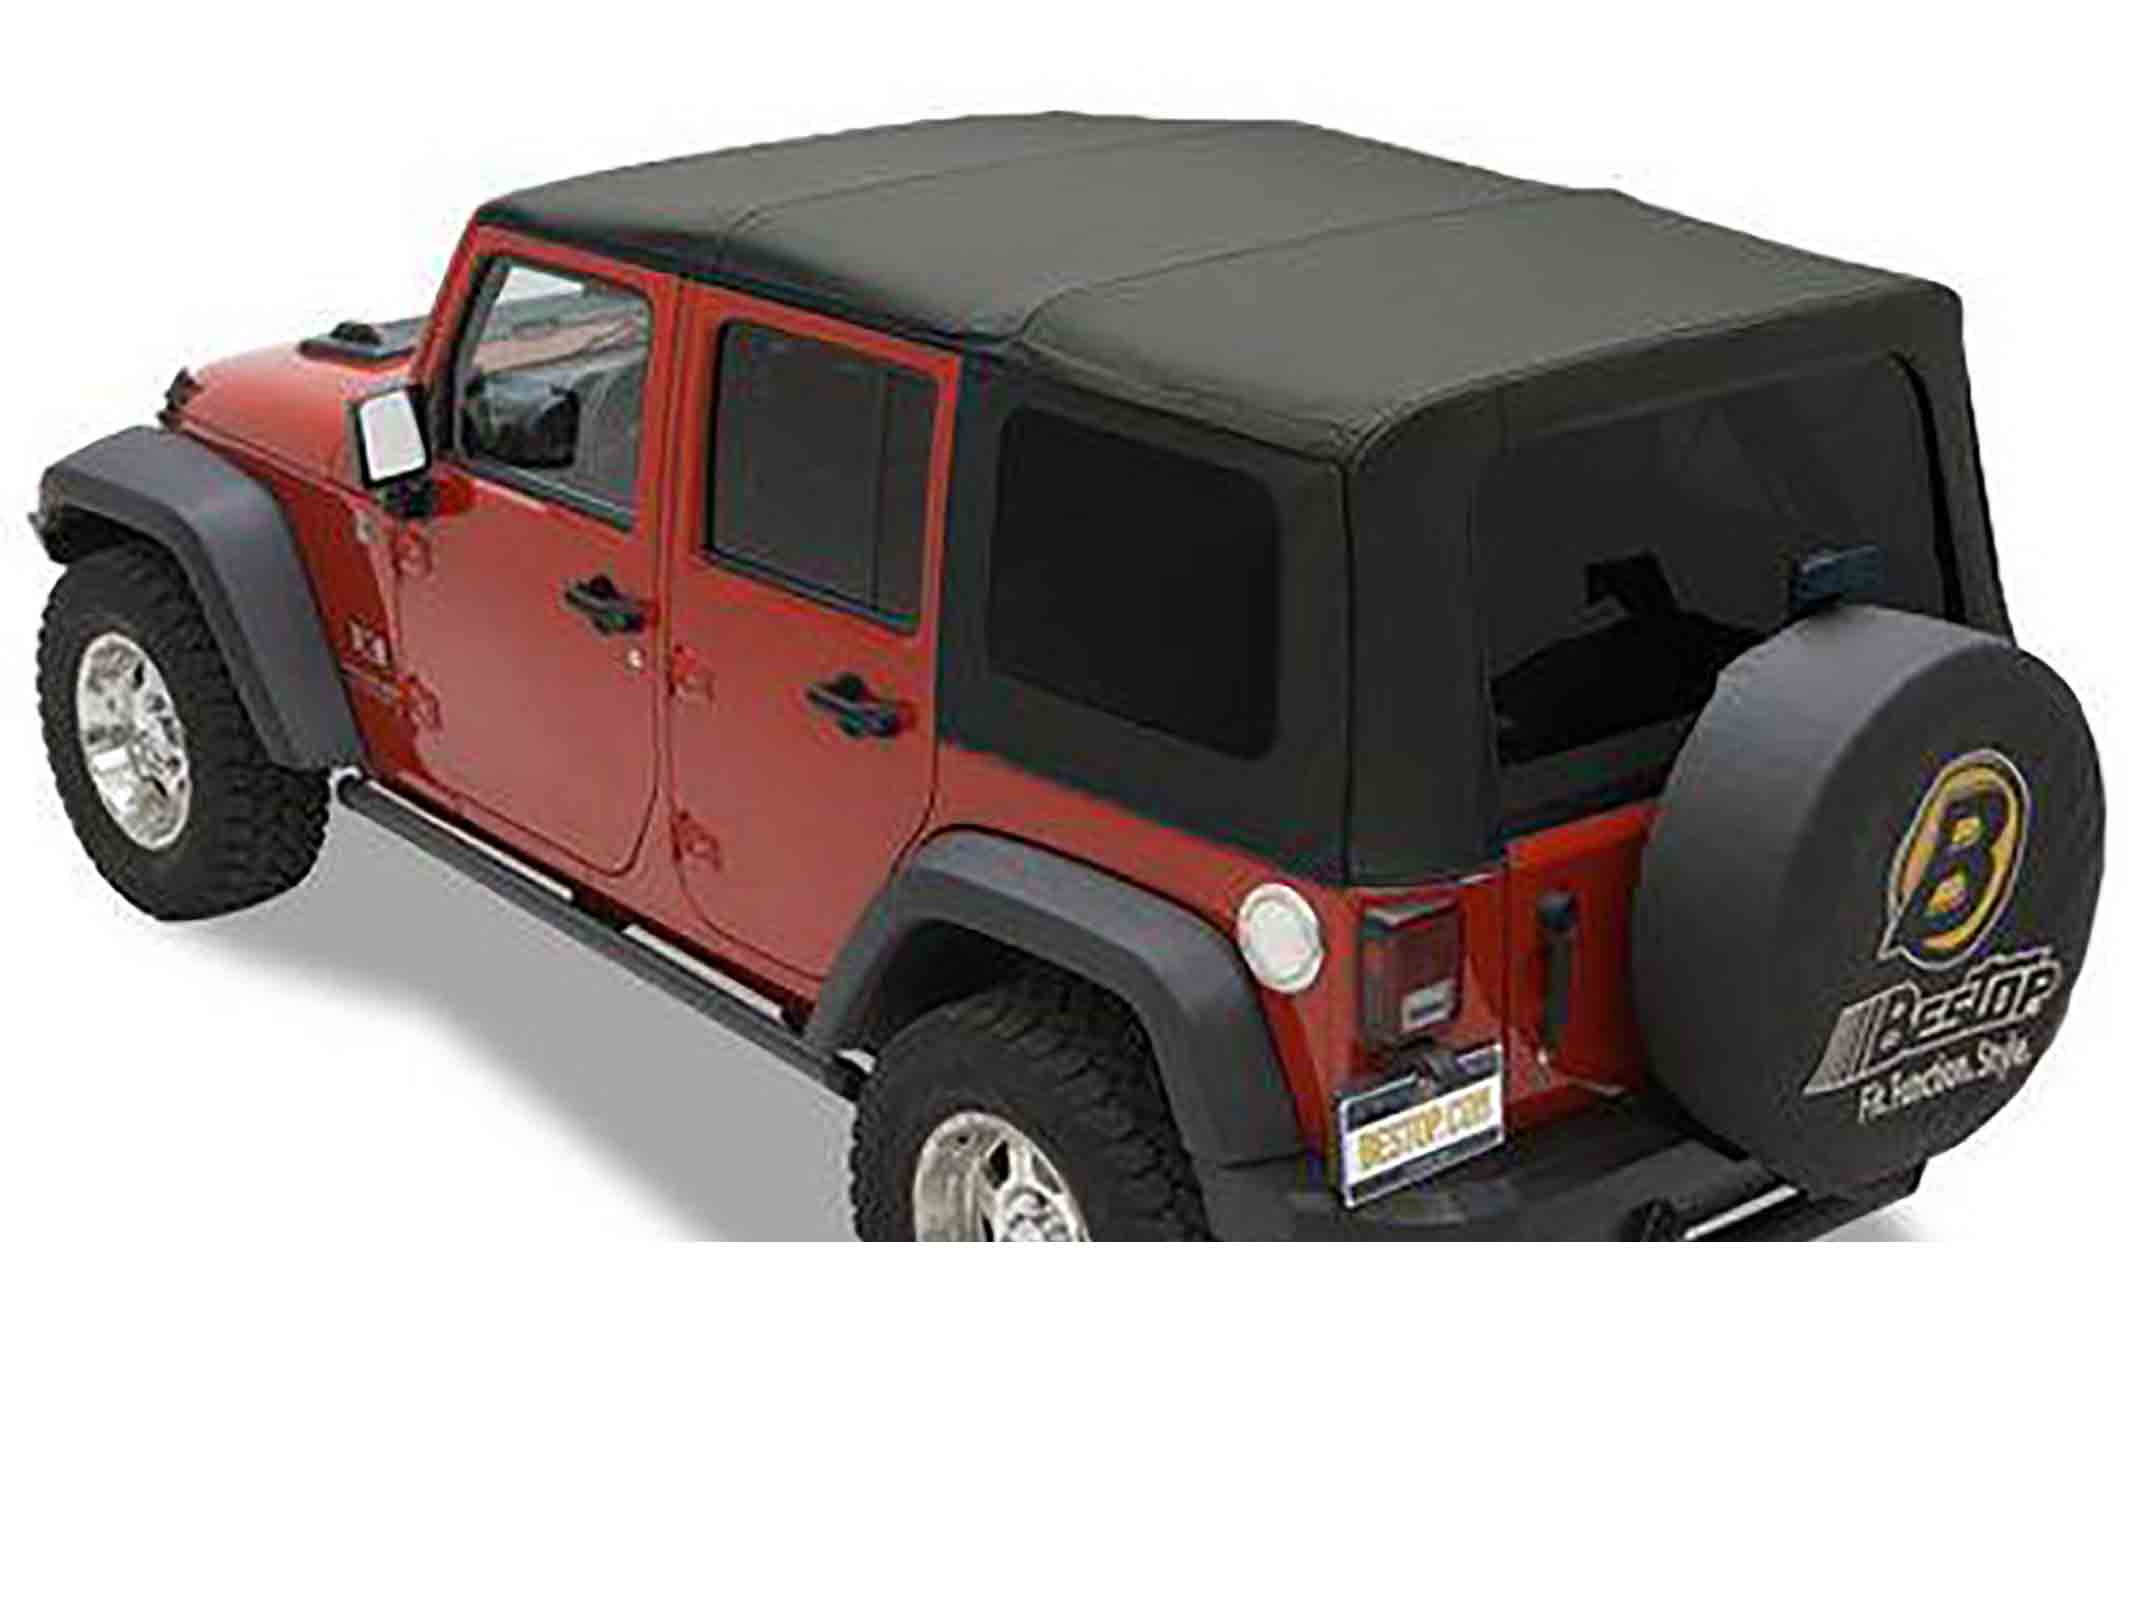 Sailcloth rat wrangler jk unlimited 10 softtop soft top capottina ricambio come originale con vetri s